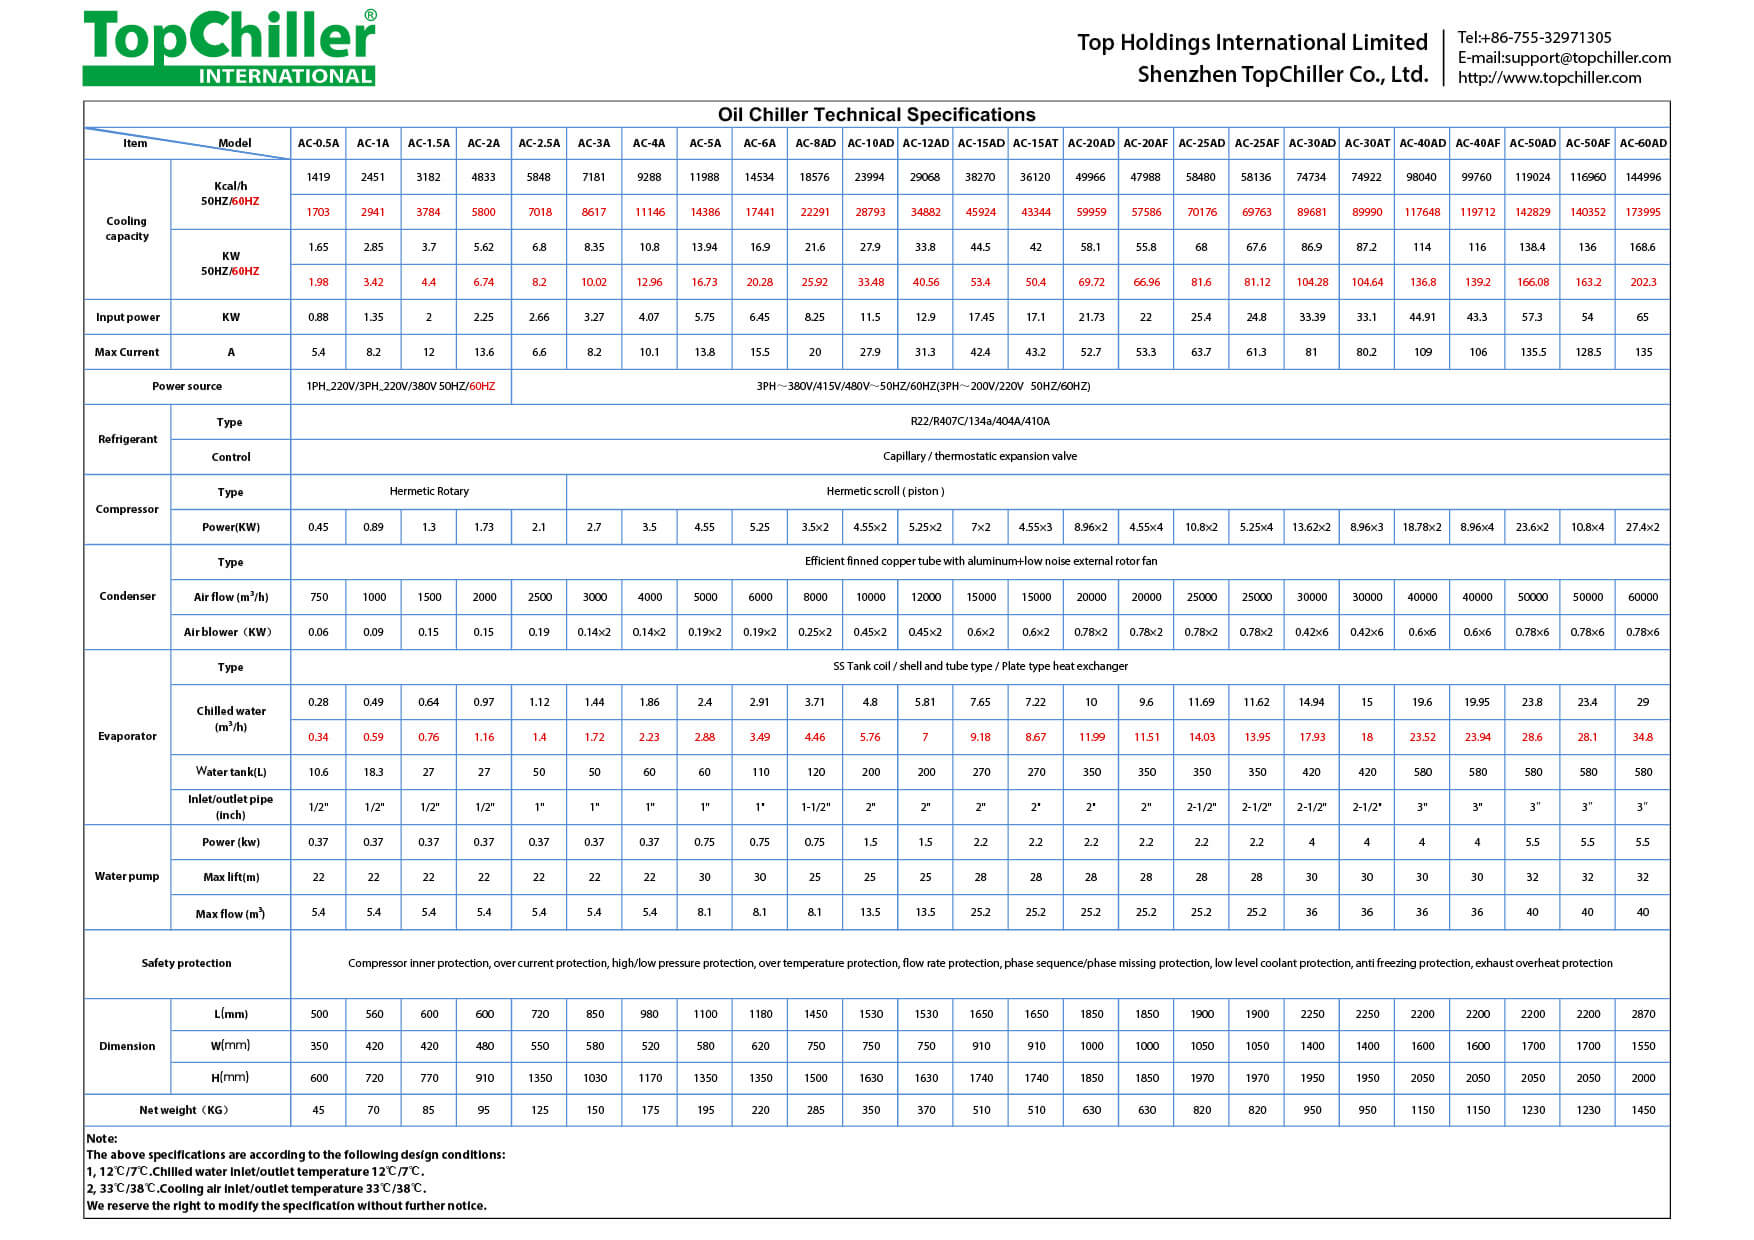 Oil Chiller Technical Specifications